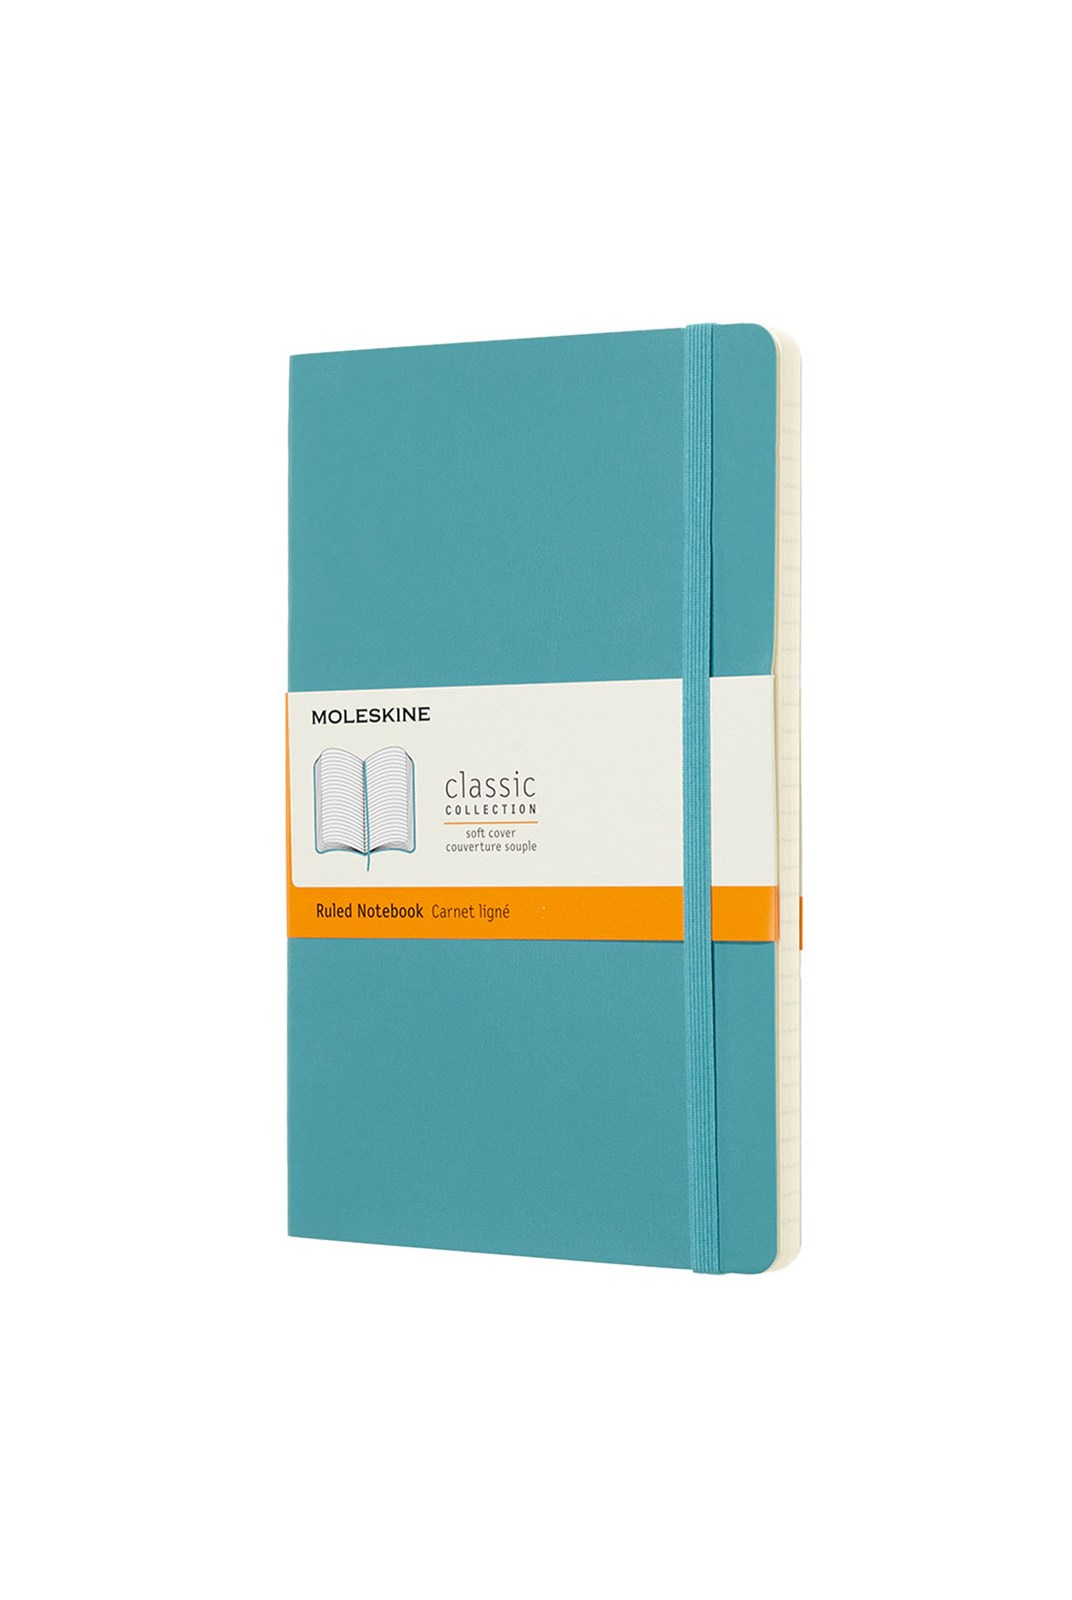 Moleskine - Classic Soft Cover Notebook - Ruled - Large - Reef Blue